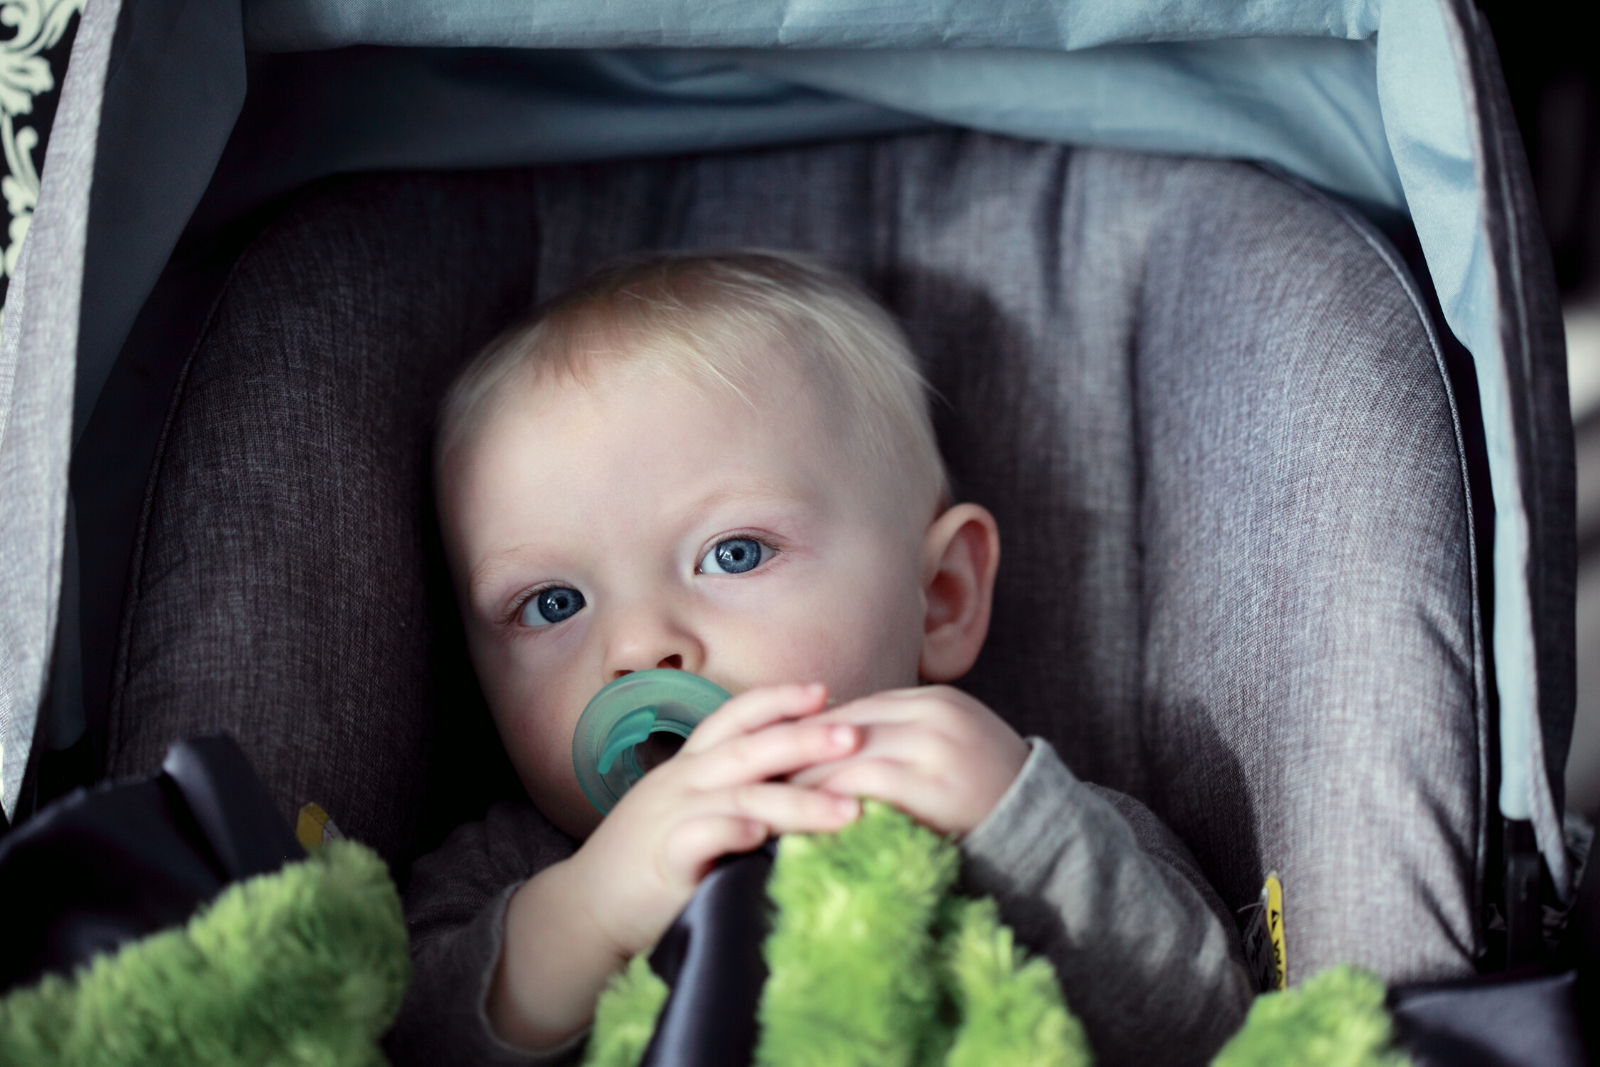 Baby In an Infant Car Seat   How To Install An Infant Car Seat (Or Where To Get Help)